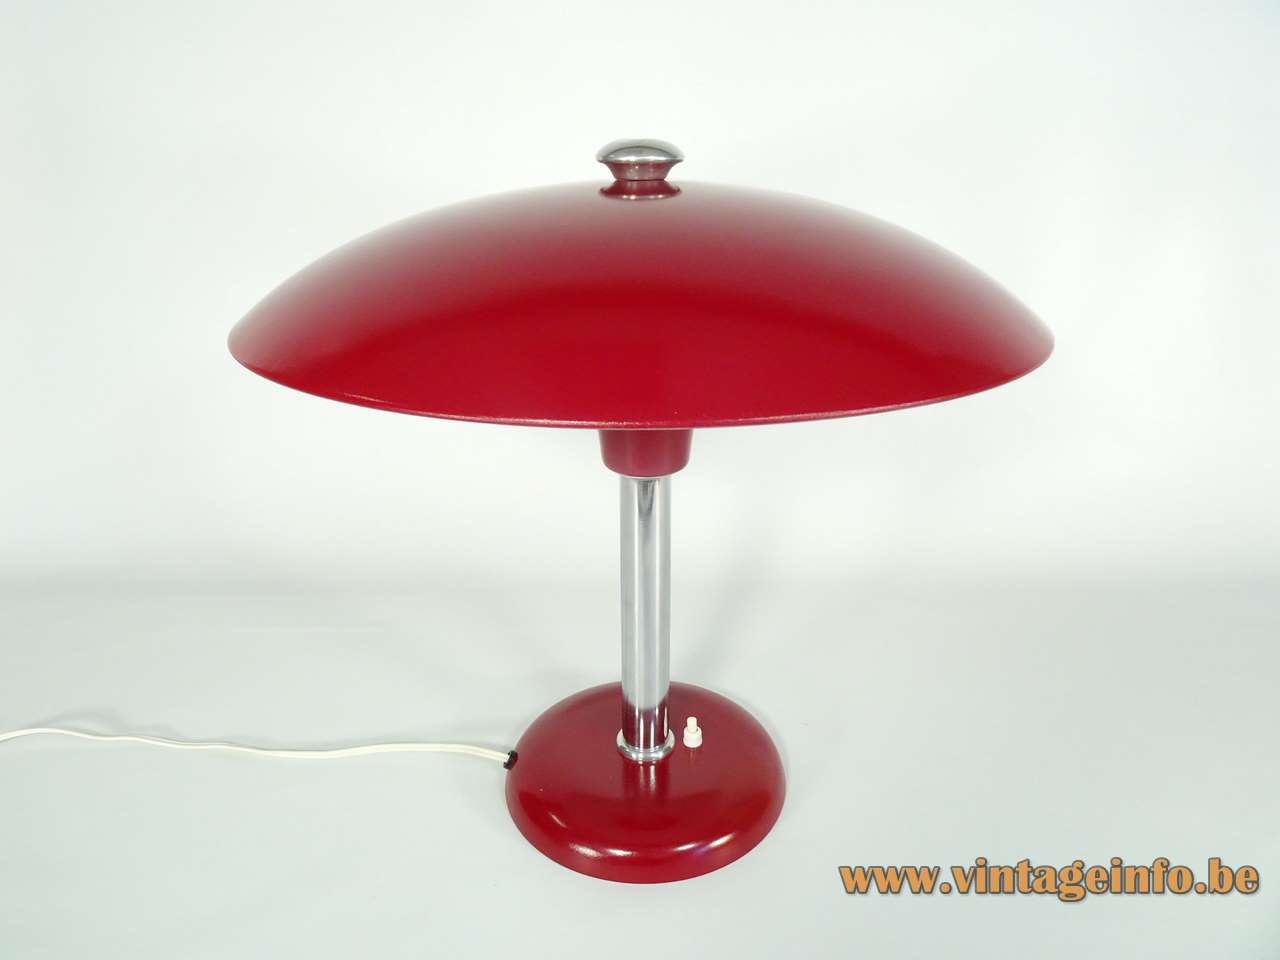 Max Schumacher desk lamp 1934 design red mushroom lampshade Werner Schröder Bauhaus art deco 1930s 1940s